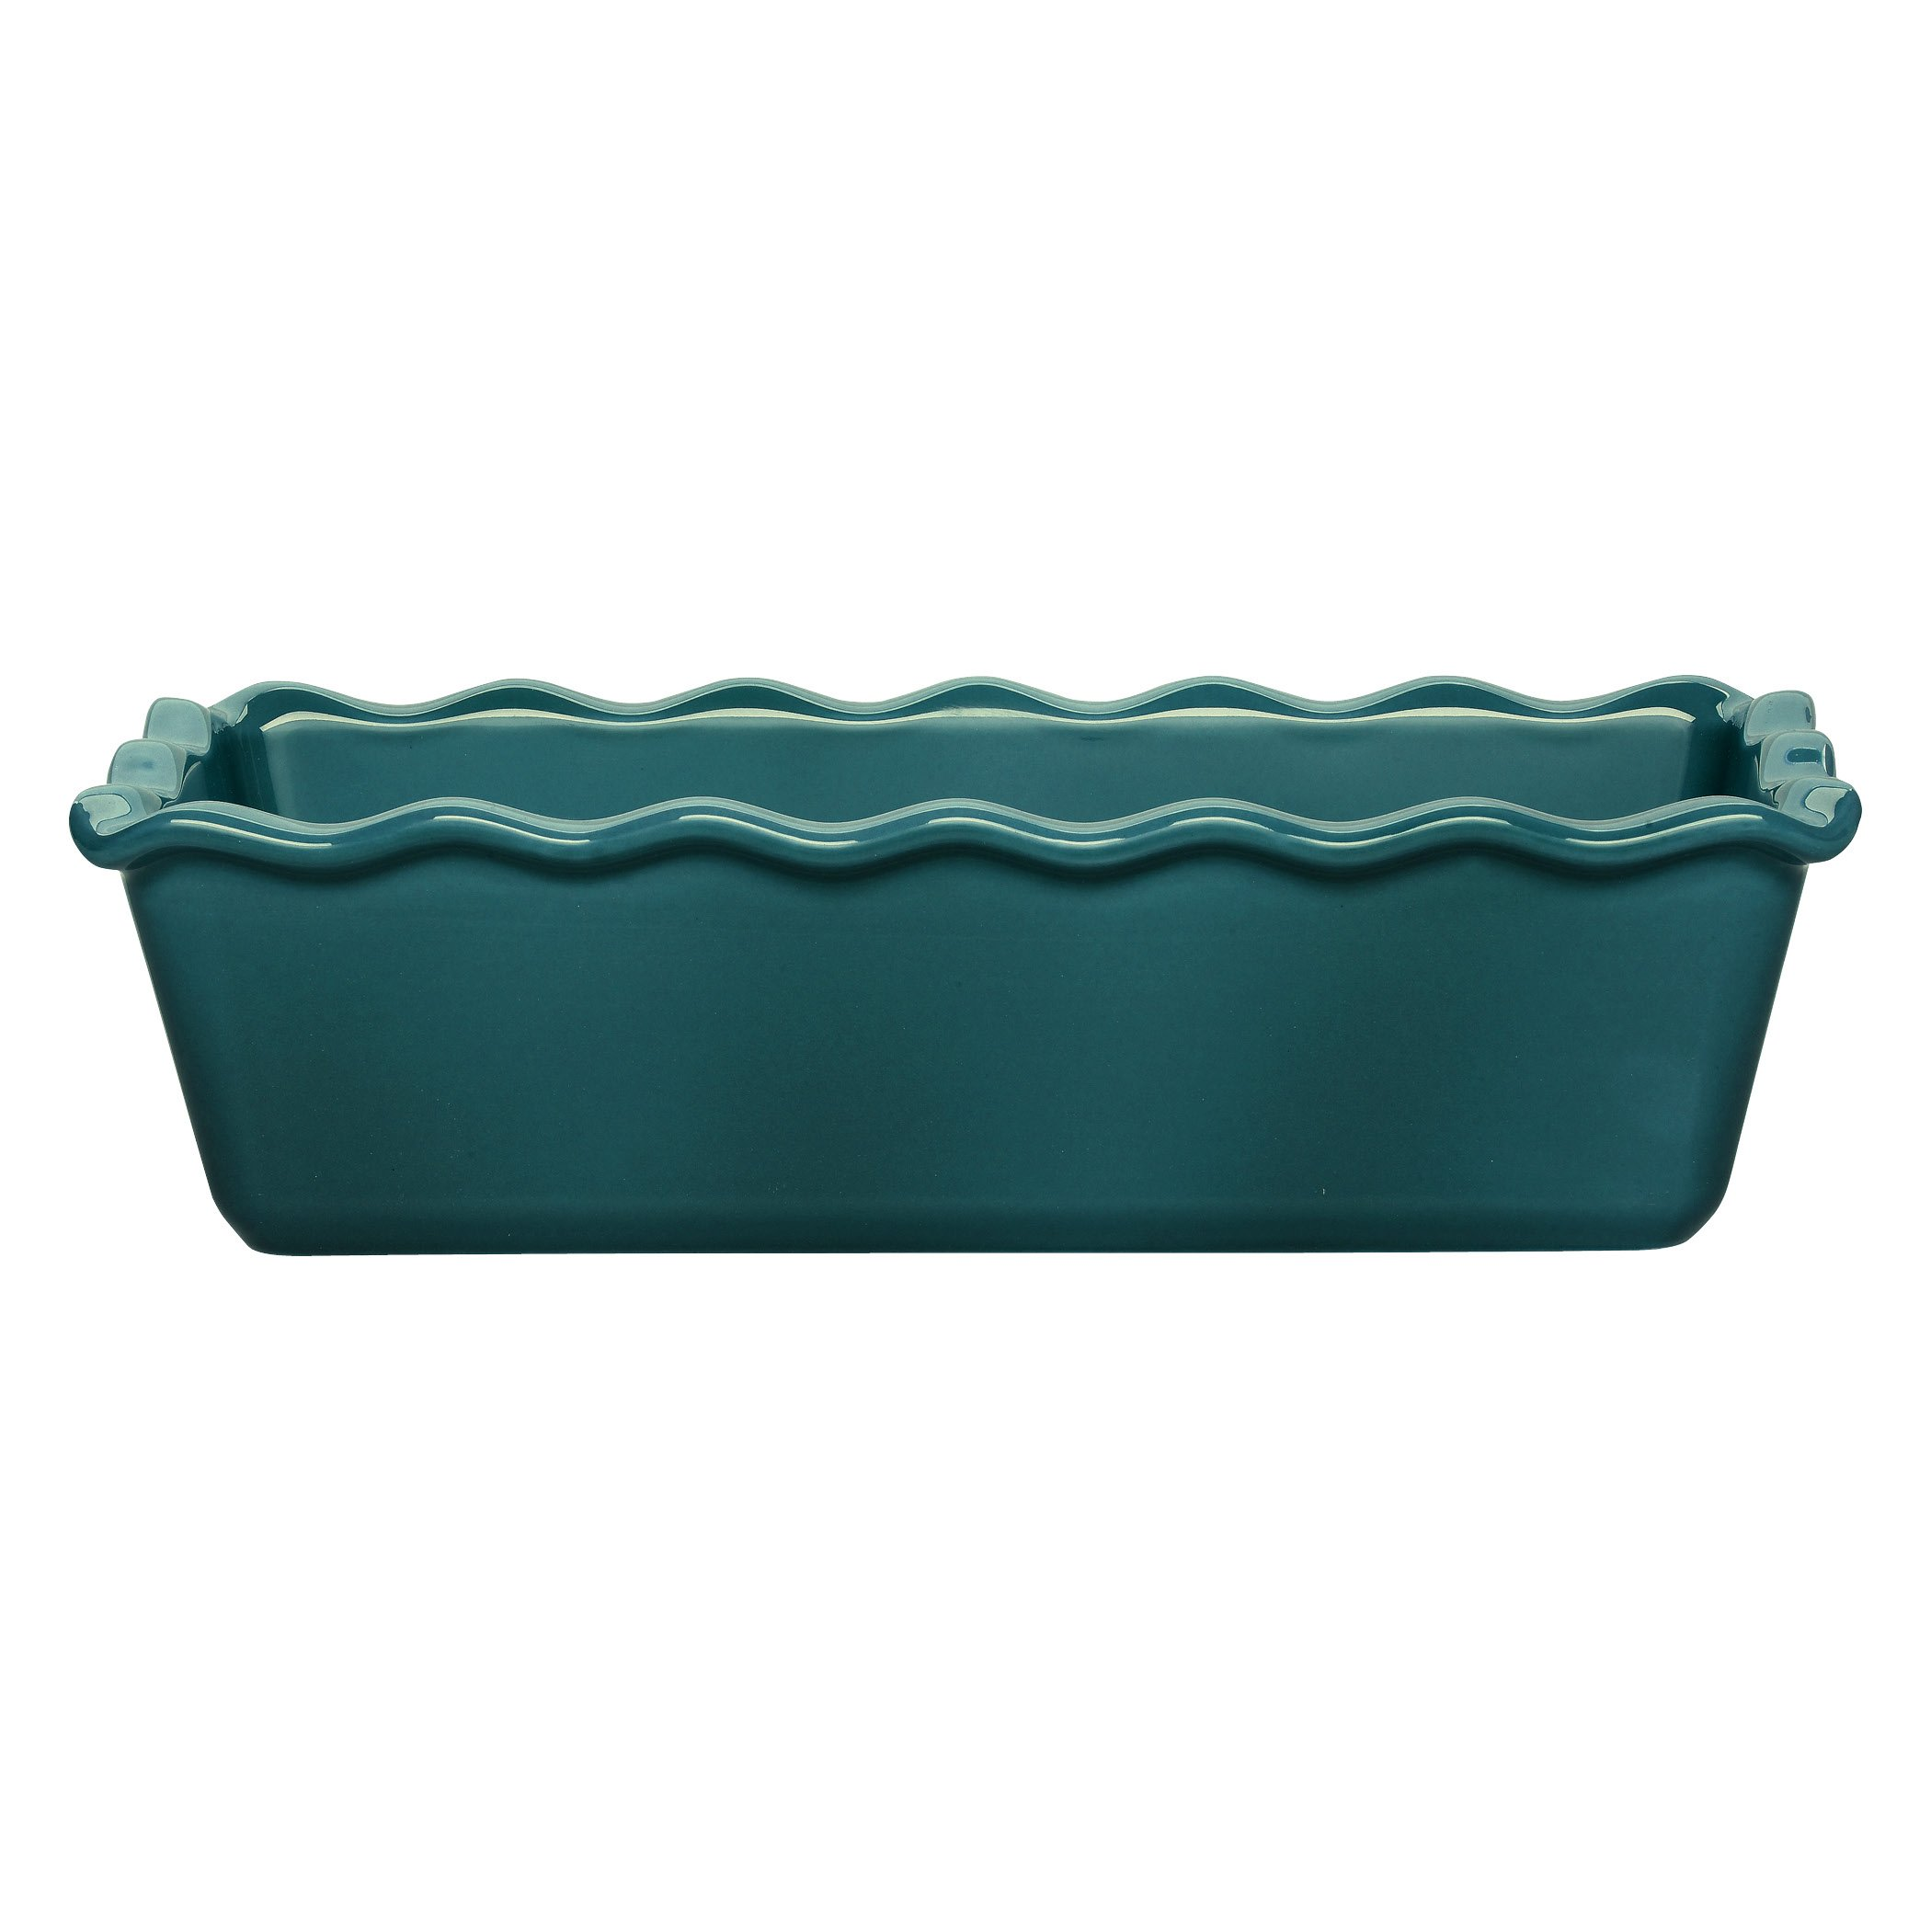 Emile Henry Made In France Ruffled Loaf Pan, 9'' by 5'' by 3'', Blue Flame by Emile Henry